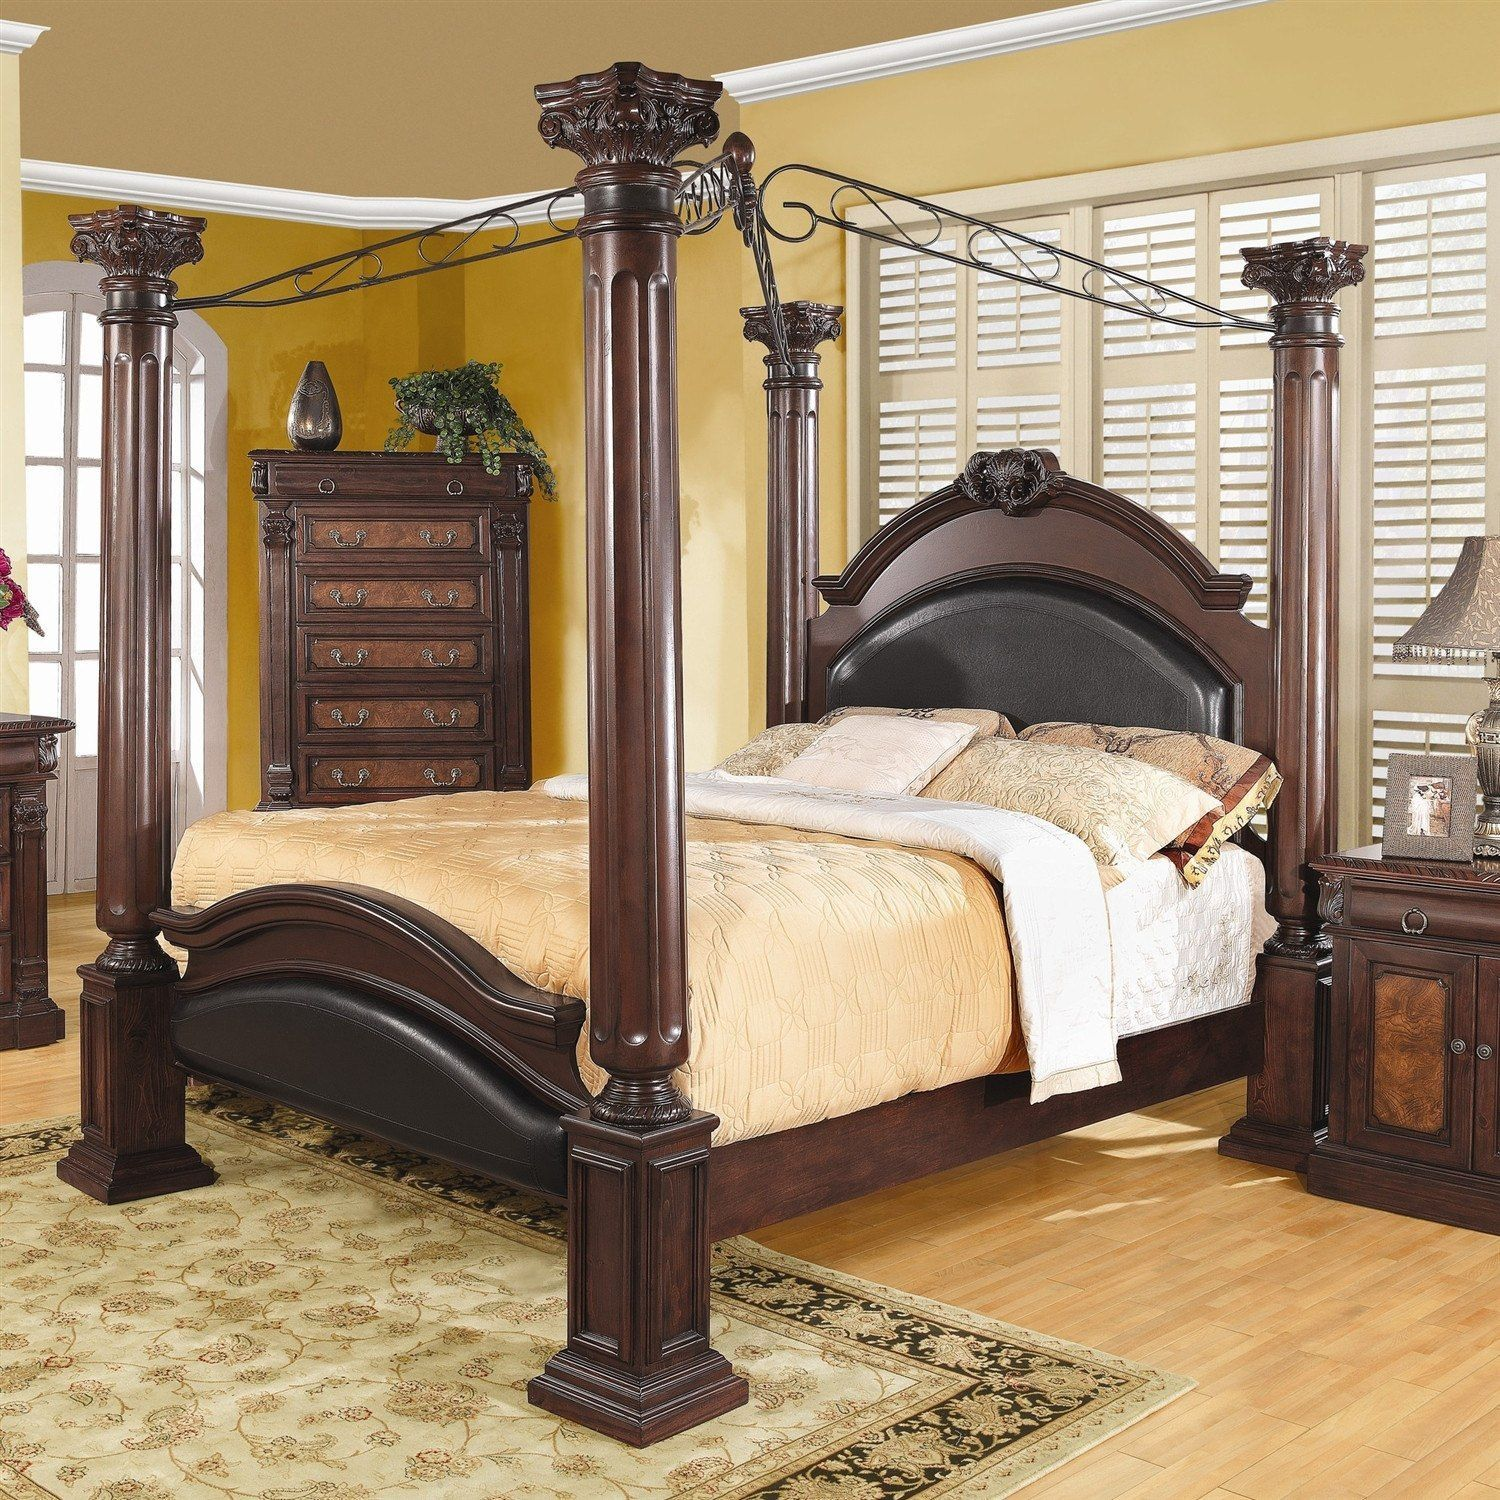 Queen Size Canopy Bed 4 Poster Bed With Large Posts